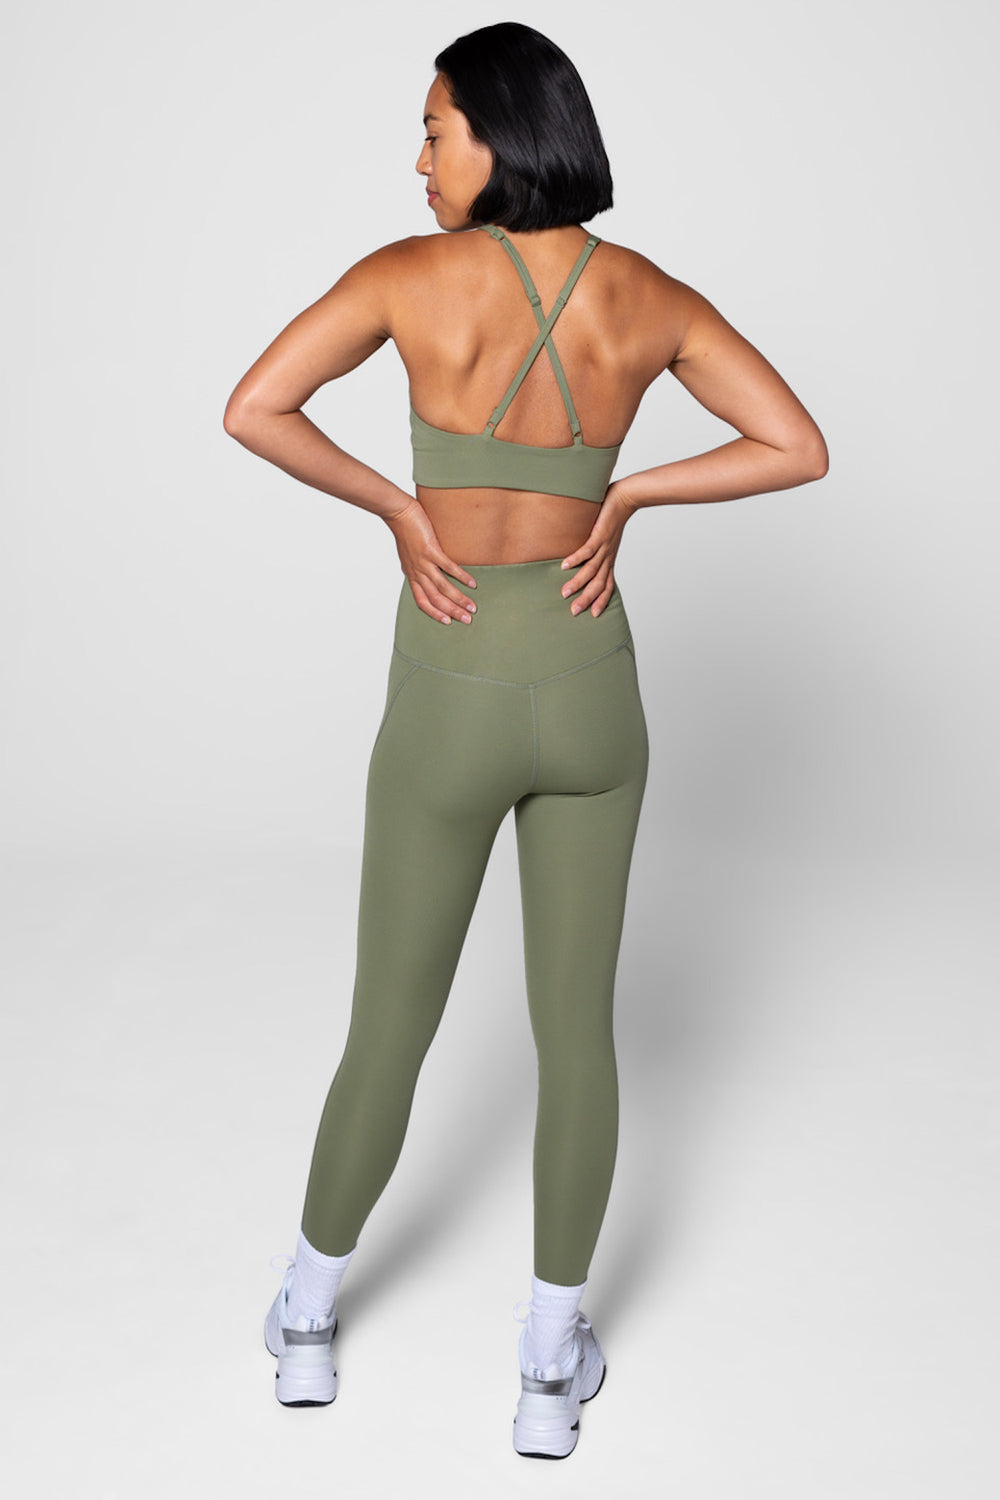 Girlfriend Collective Short Compressive High-Rise Legging in Olive - Whimsy & Row